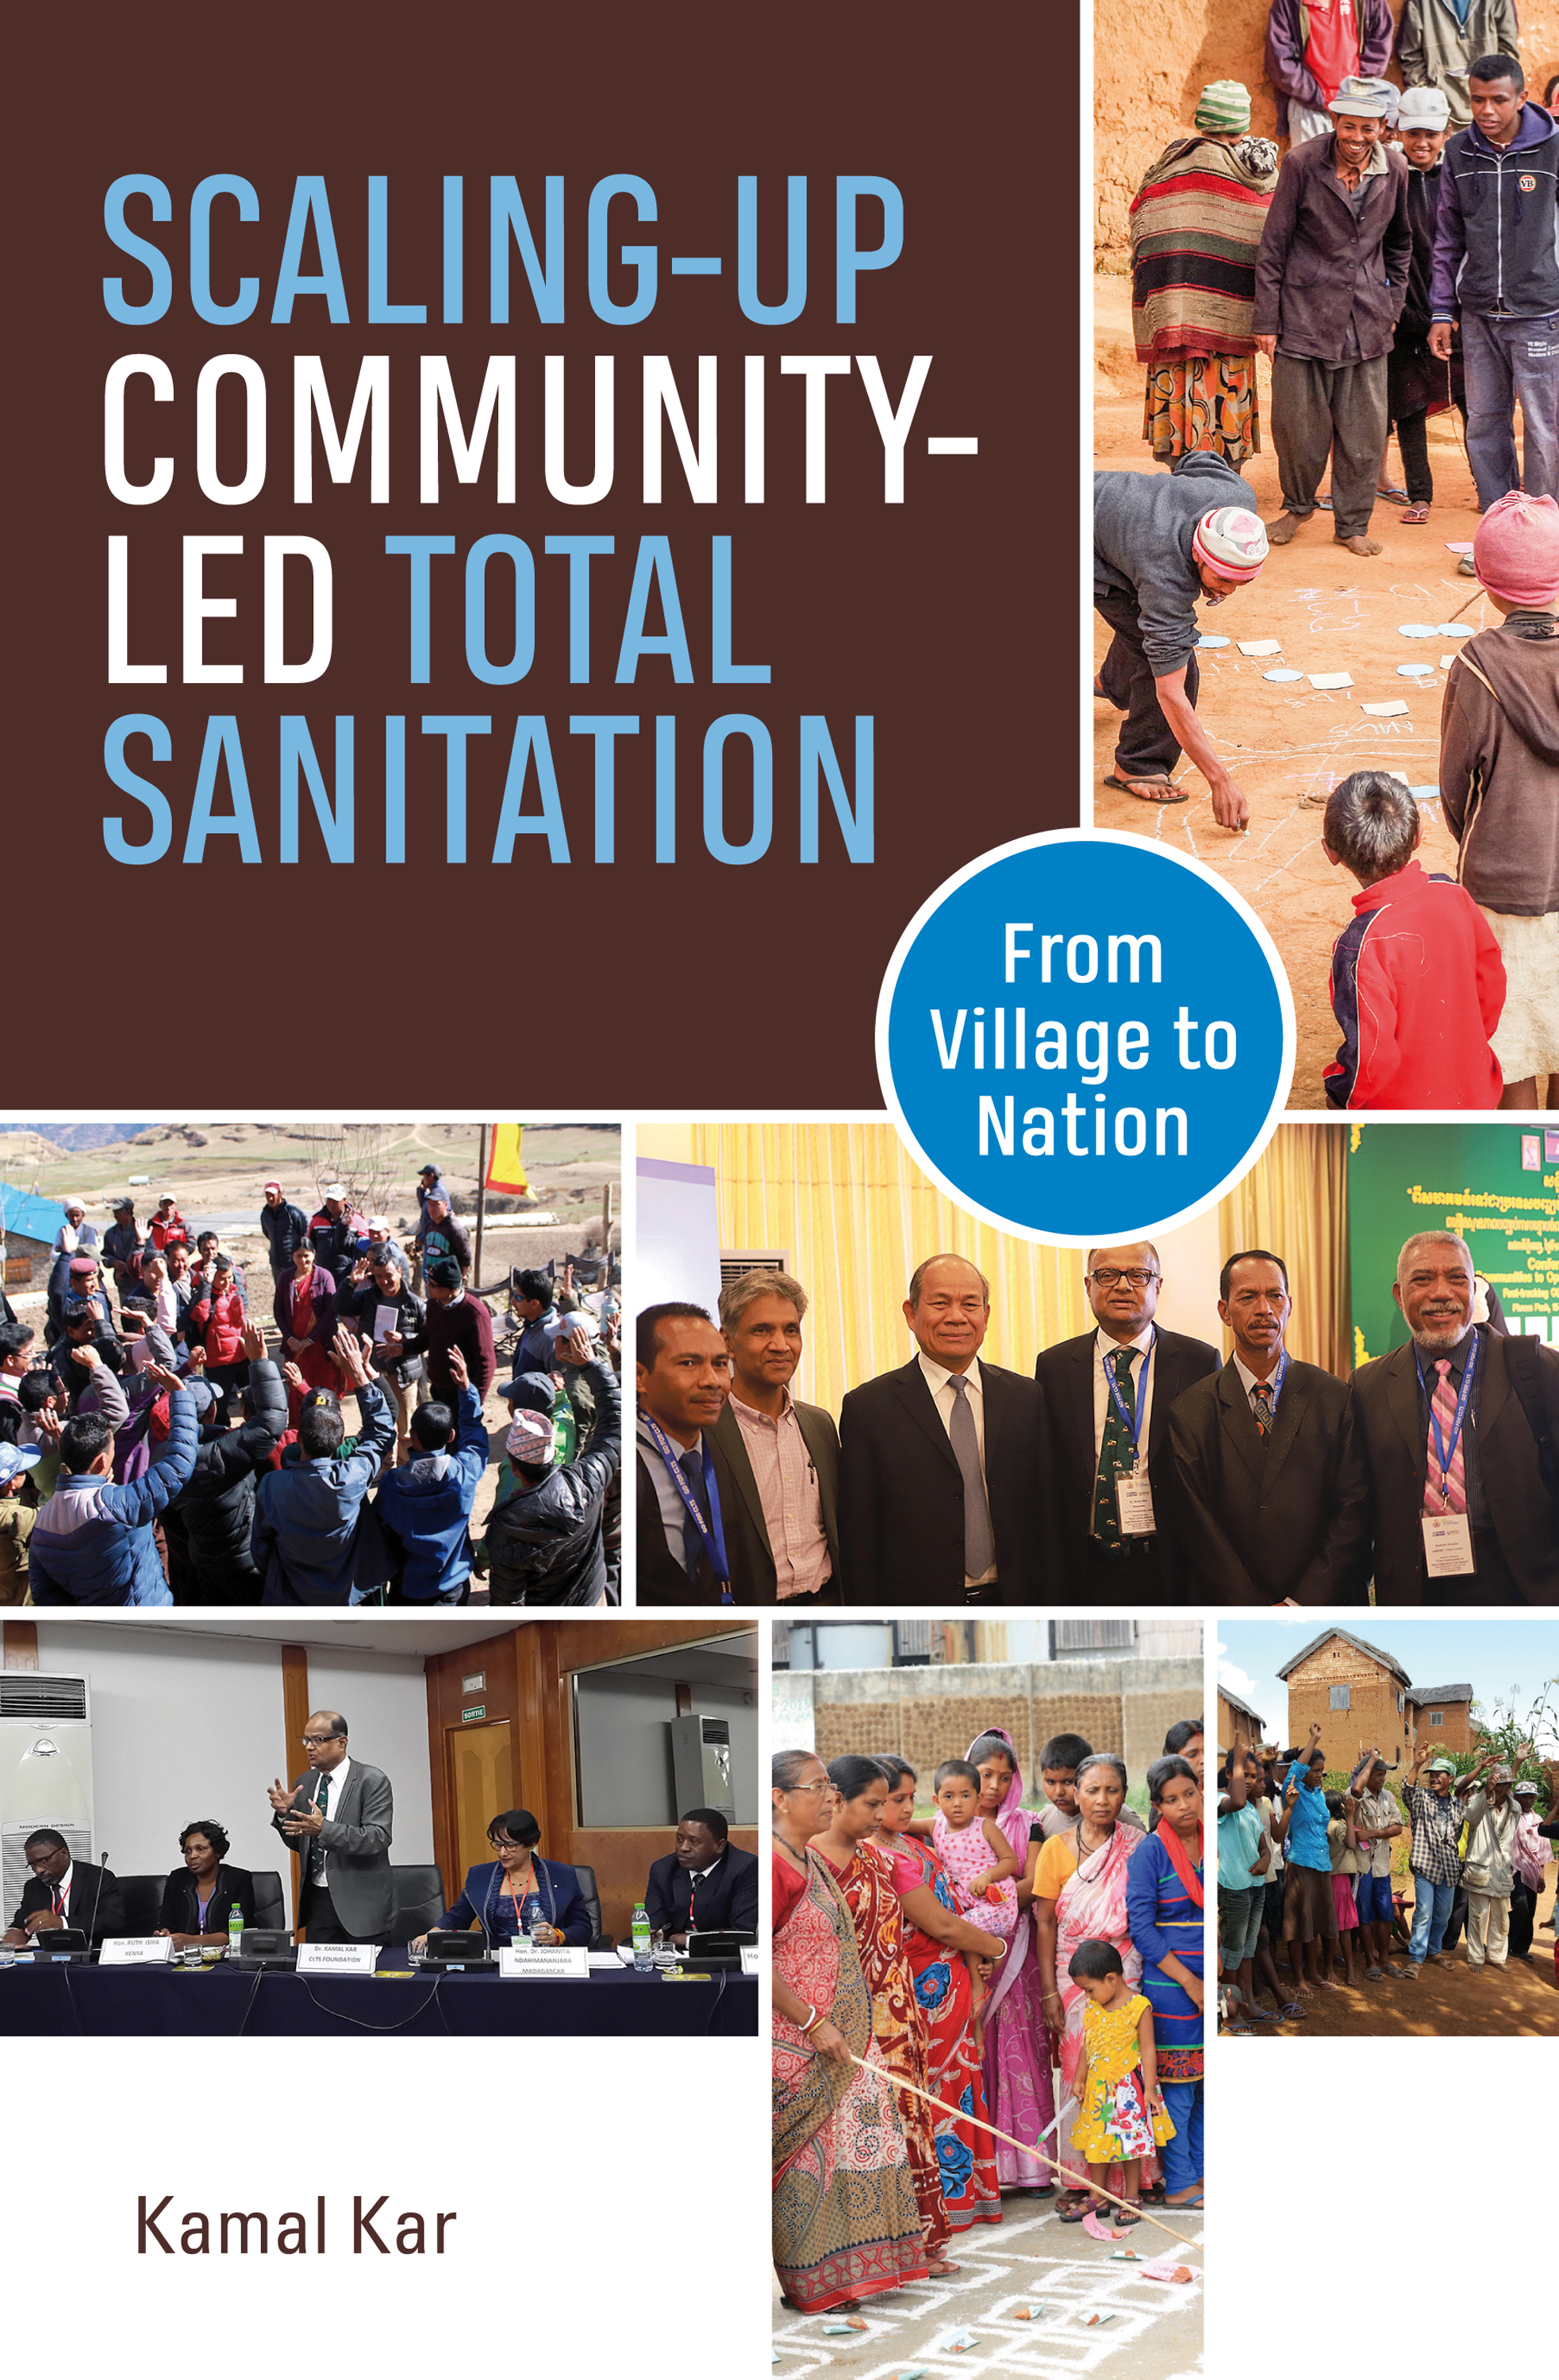 Scaling-up Community-Led Total Sanitation